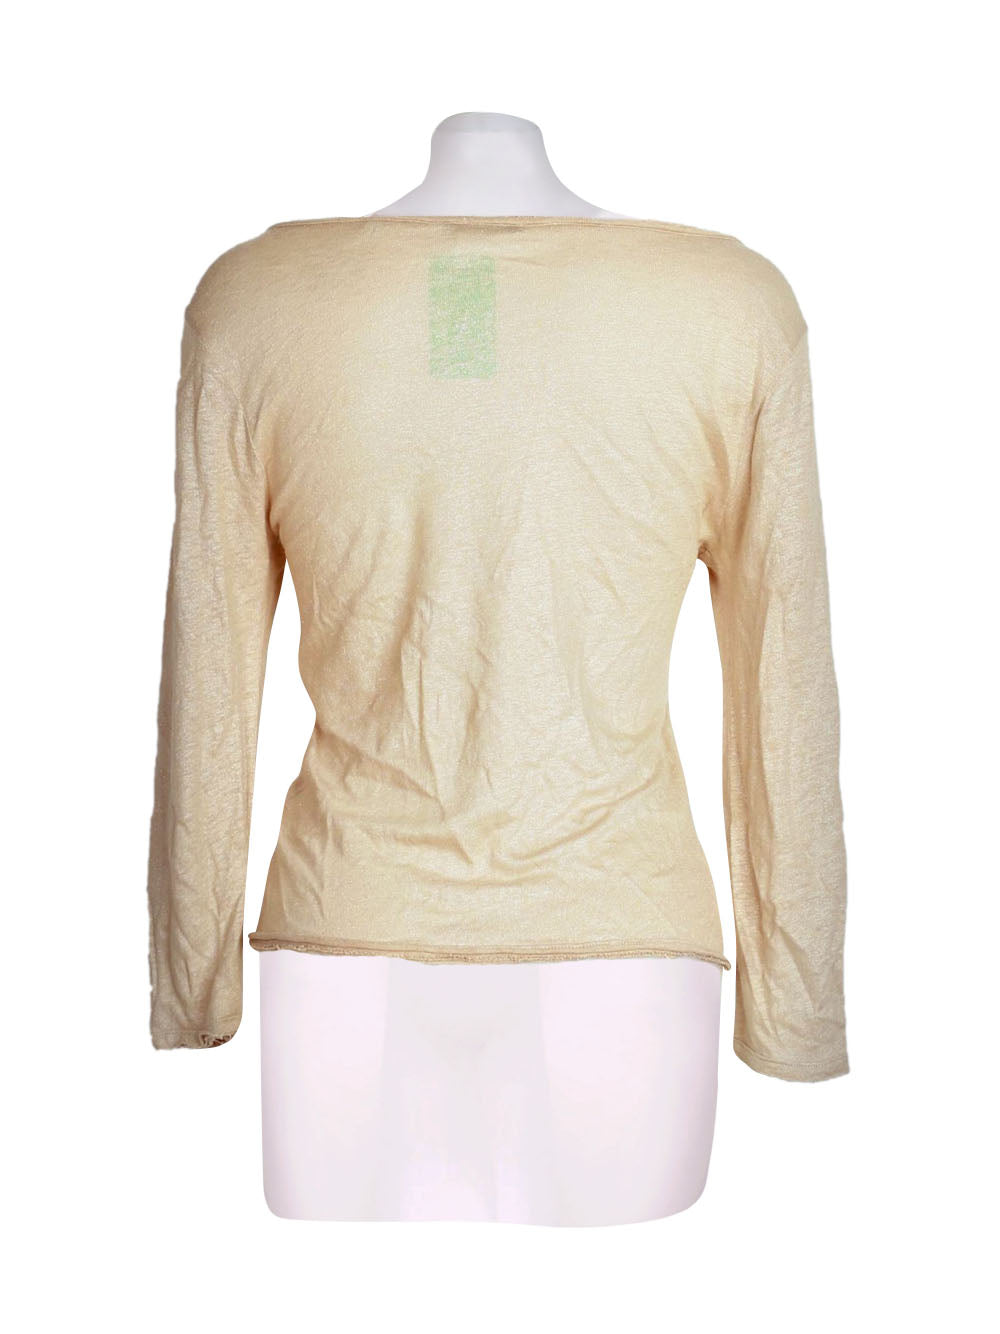 Back photo of Preloved Rich&Royal Beige Woman's cardigan - size 12/L